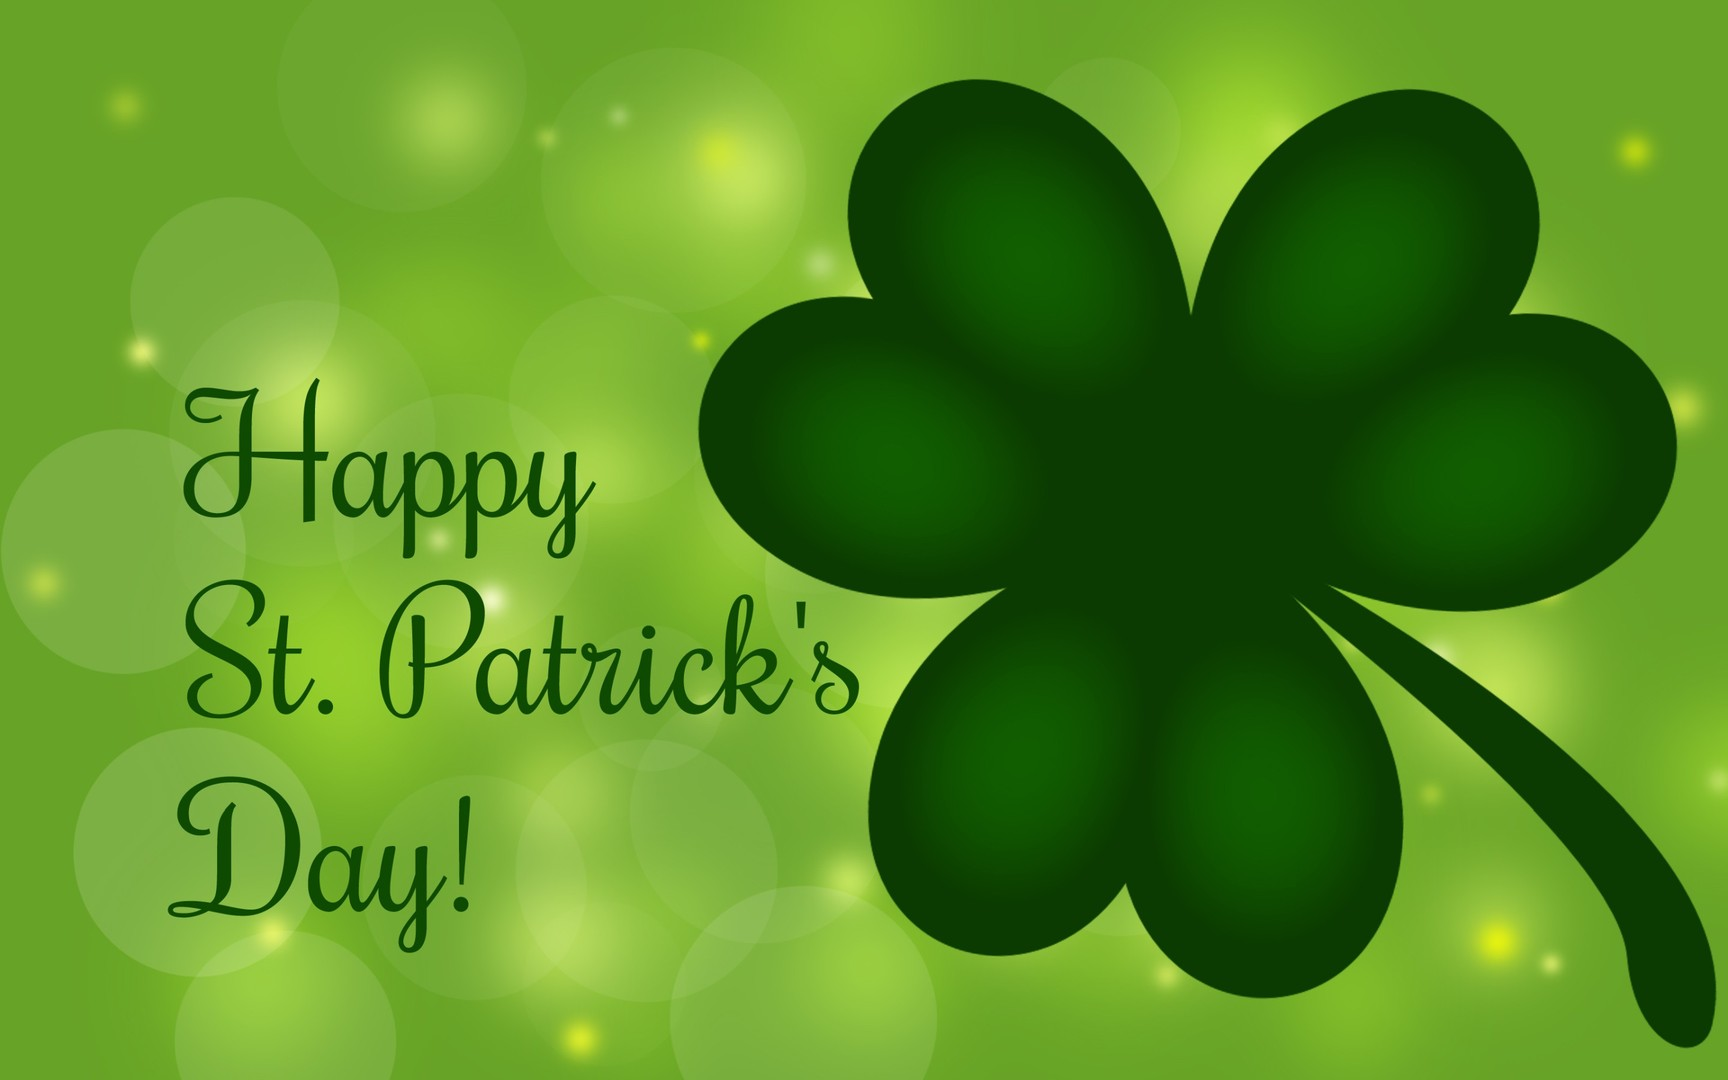 Happy St. Patricks Day 2017 Images, Quotes, Clipart, Coloring Pages and ...